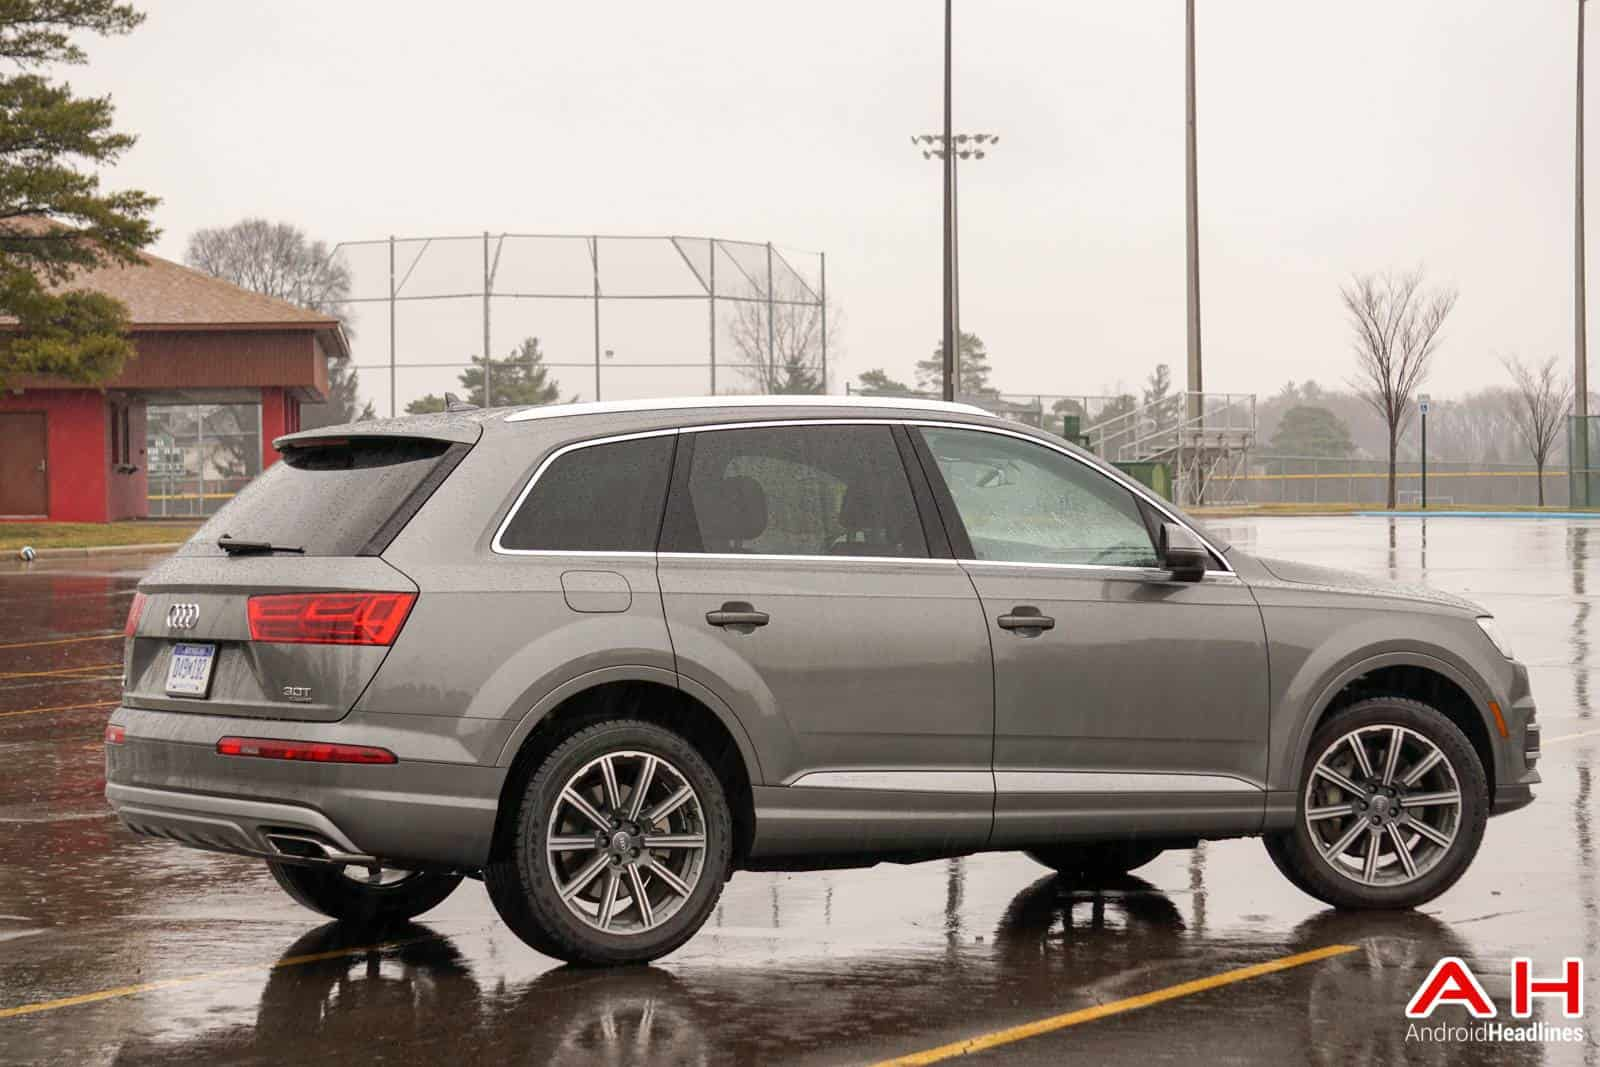 2017-Audi-Q7-Review-AH-2-27